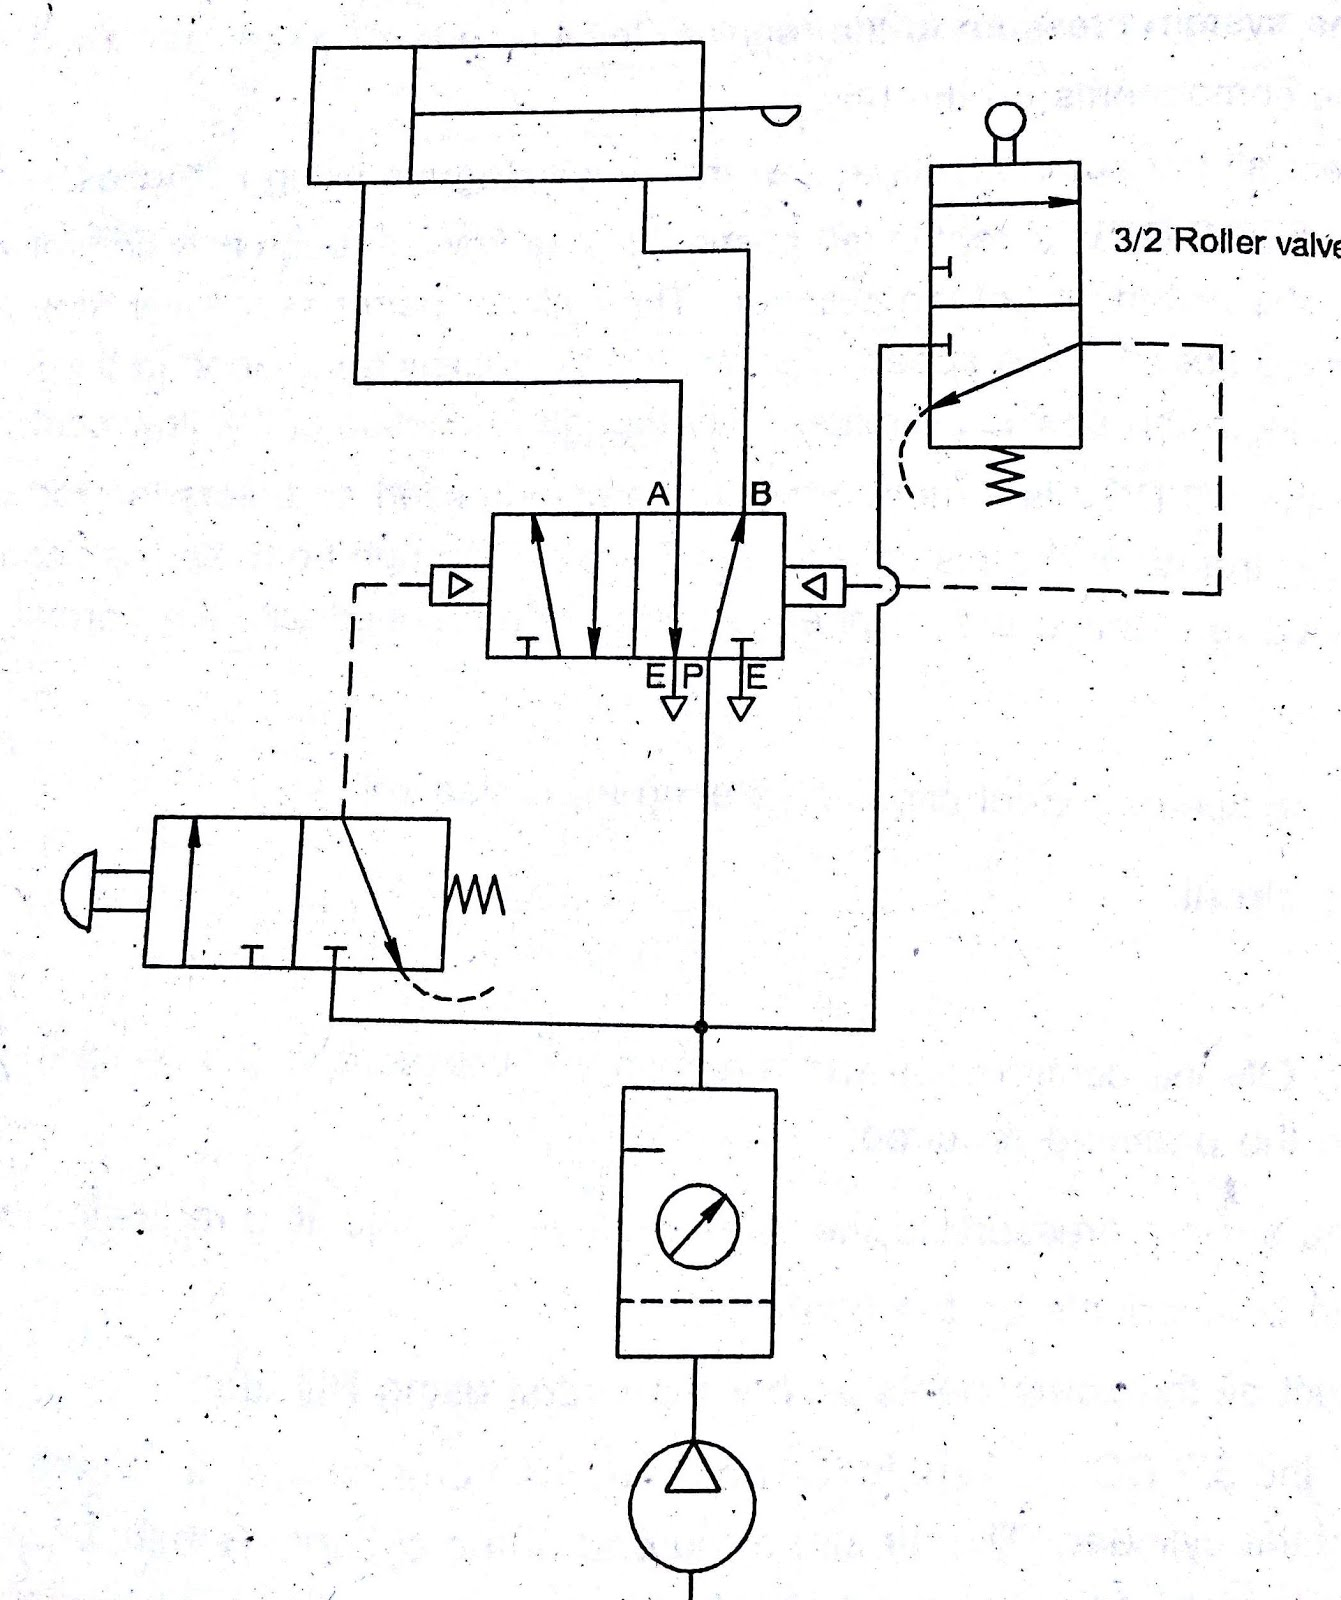 Circuit Diagram Exam Questions - Auto Electrical Wiring Diagram on pyle receiver wiring, pyle plbt72g wiring harness, bridging 4 channel amp diagram, pyle speaker, wall of sound diagram, 4 channel car amplifier diagram,